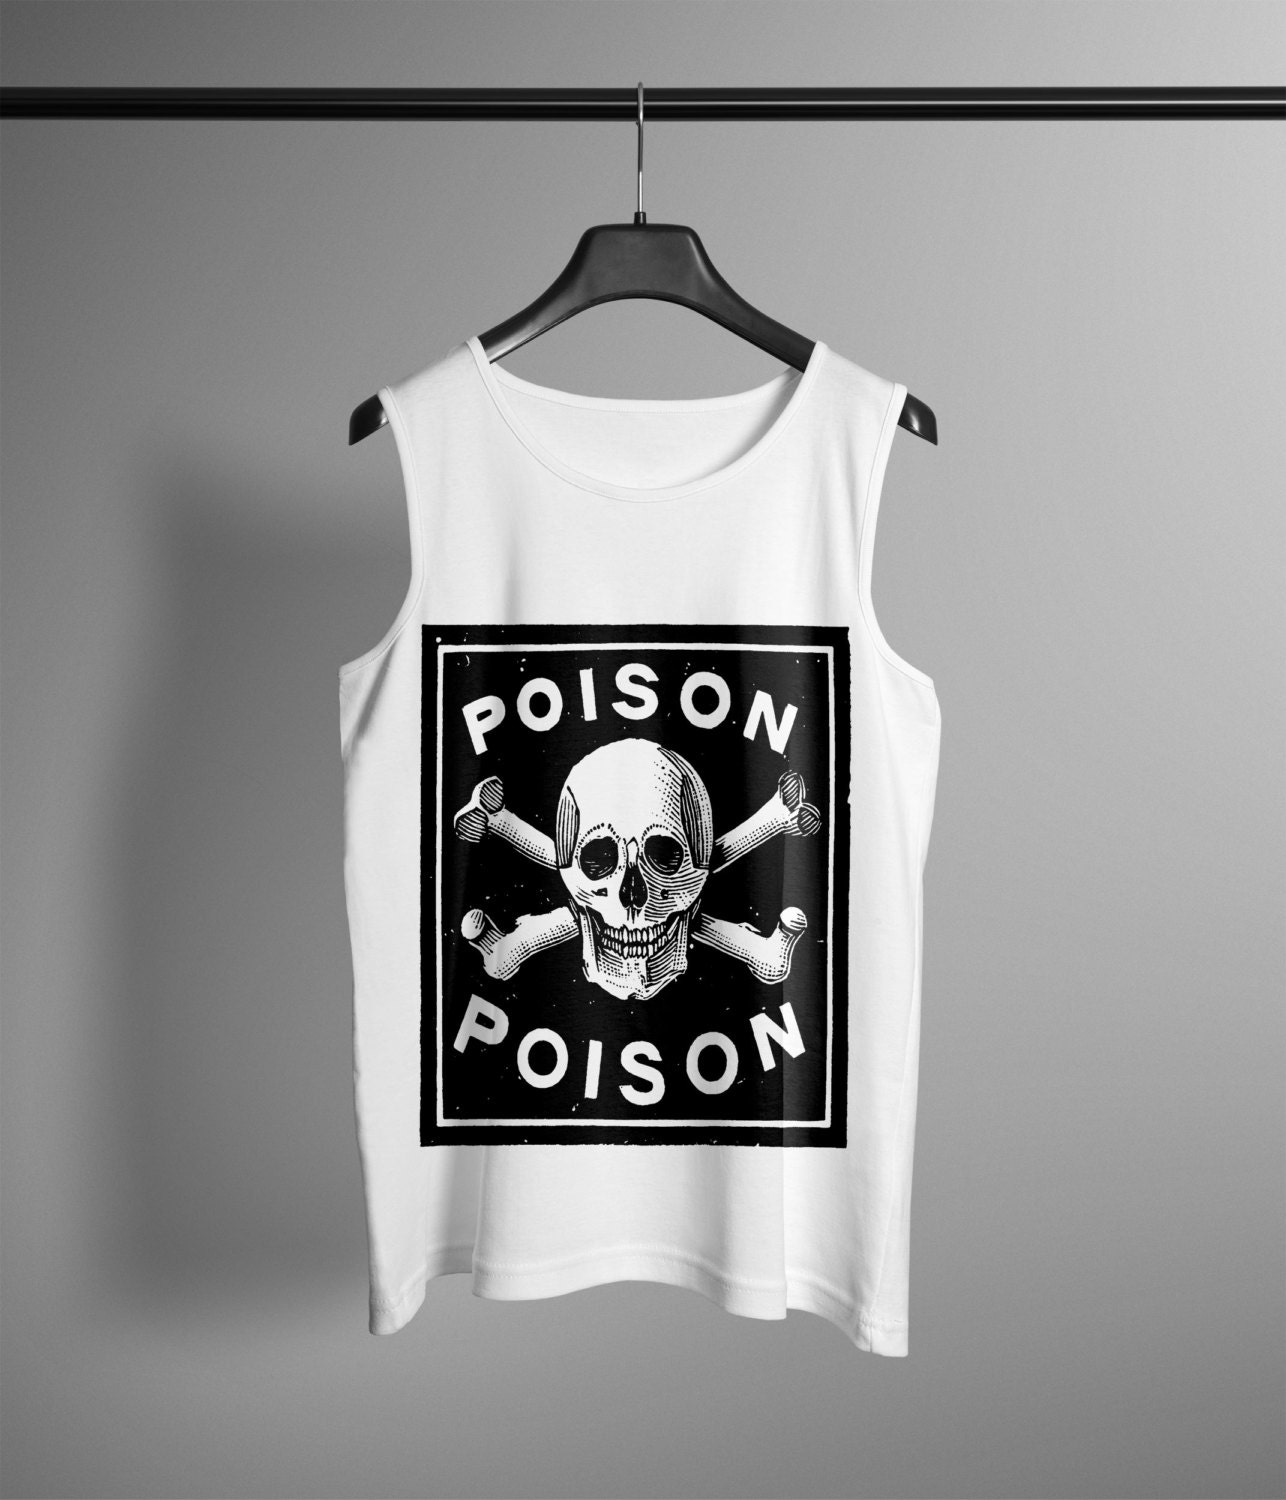 Mens Poison Label Tank Top - Occult Tank - Occult Print Graphic Tank - Graphic Tee - Graphic Tank Top - Occult Shirt l6sdgc